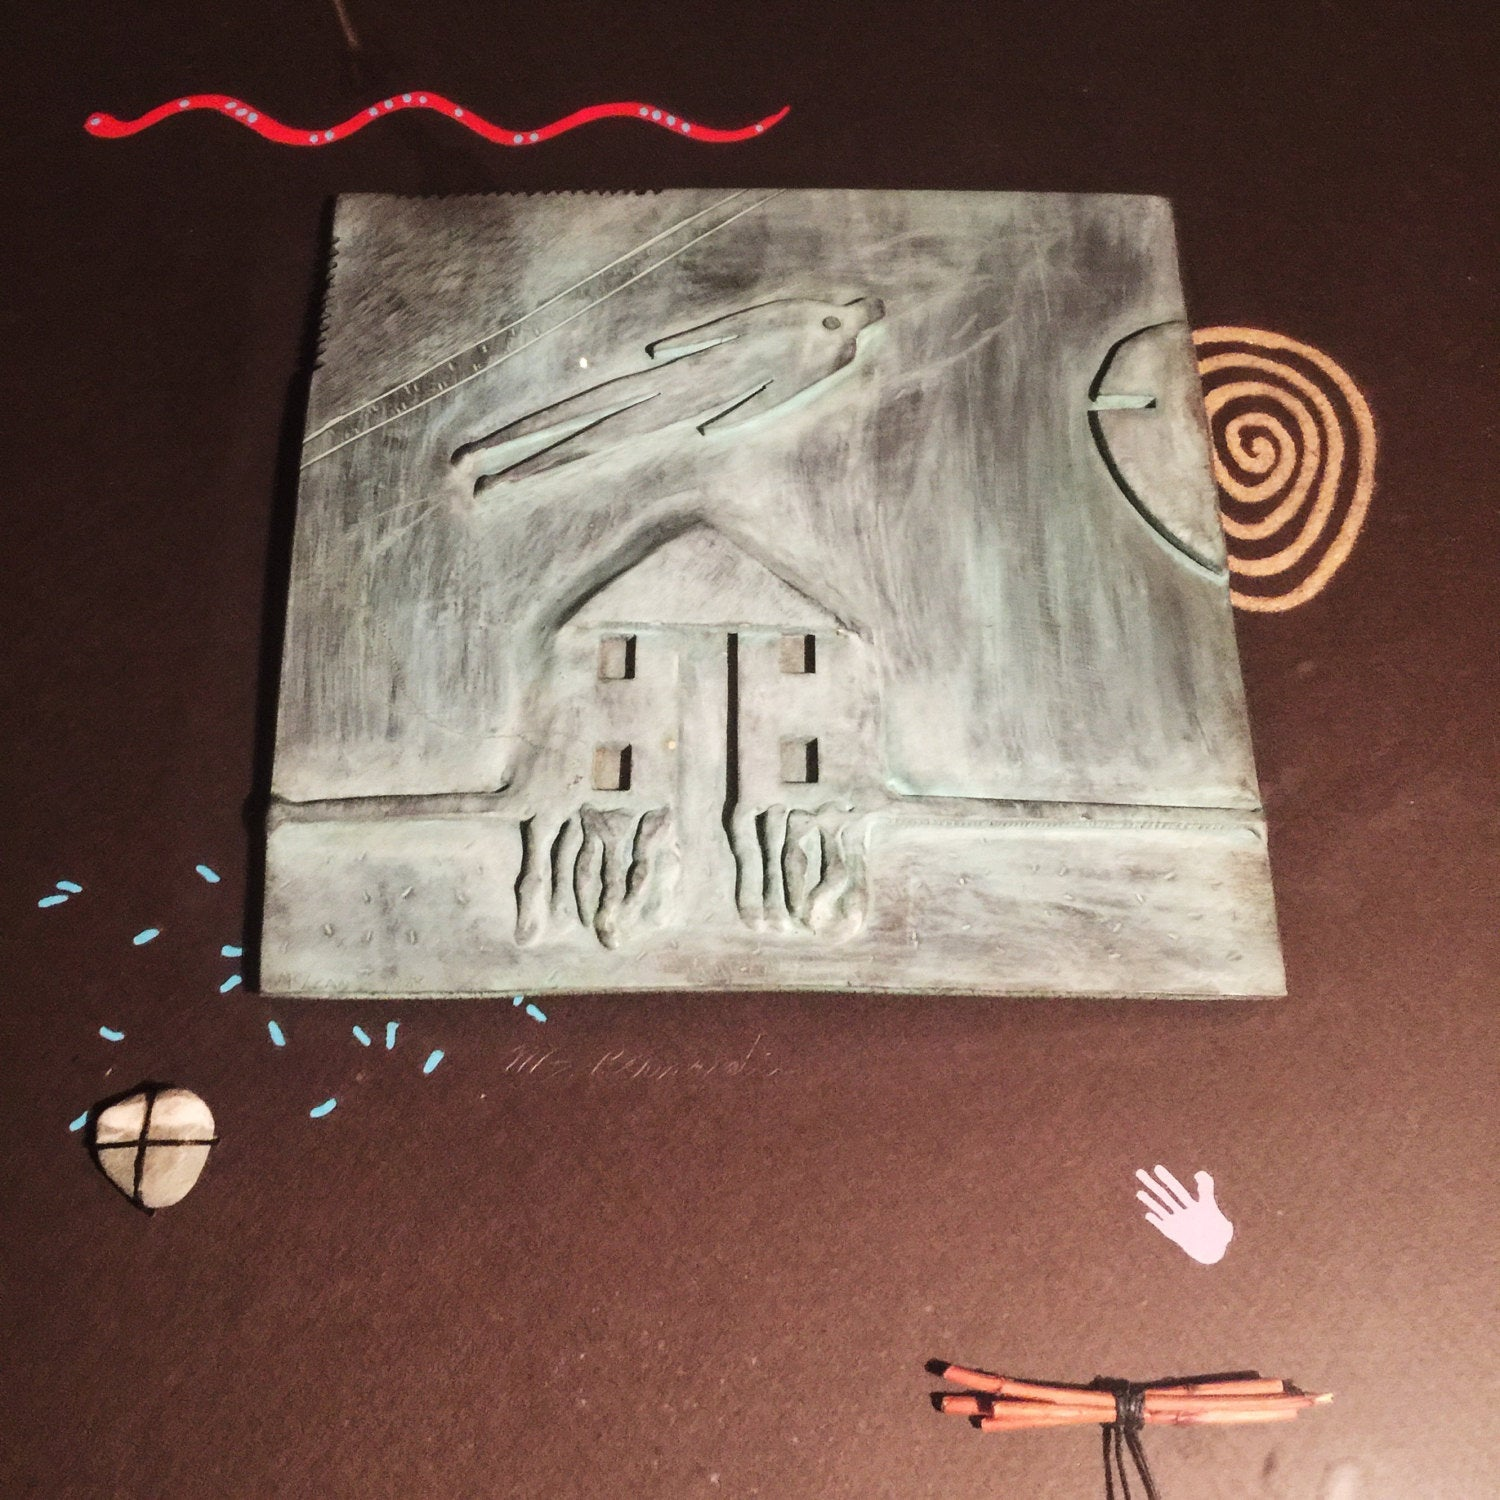 Jack McLean Bronze Wall Art Piece - Tile Art 0 1989 - Signed - Shadowbox Collage - Haunting - Ghost - Mixed Media